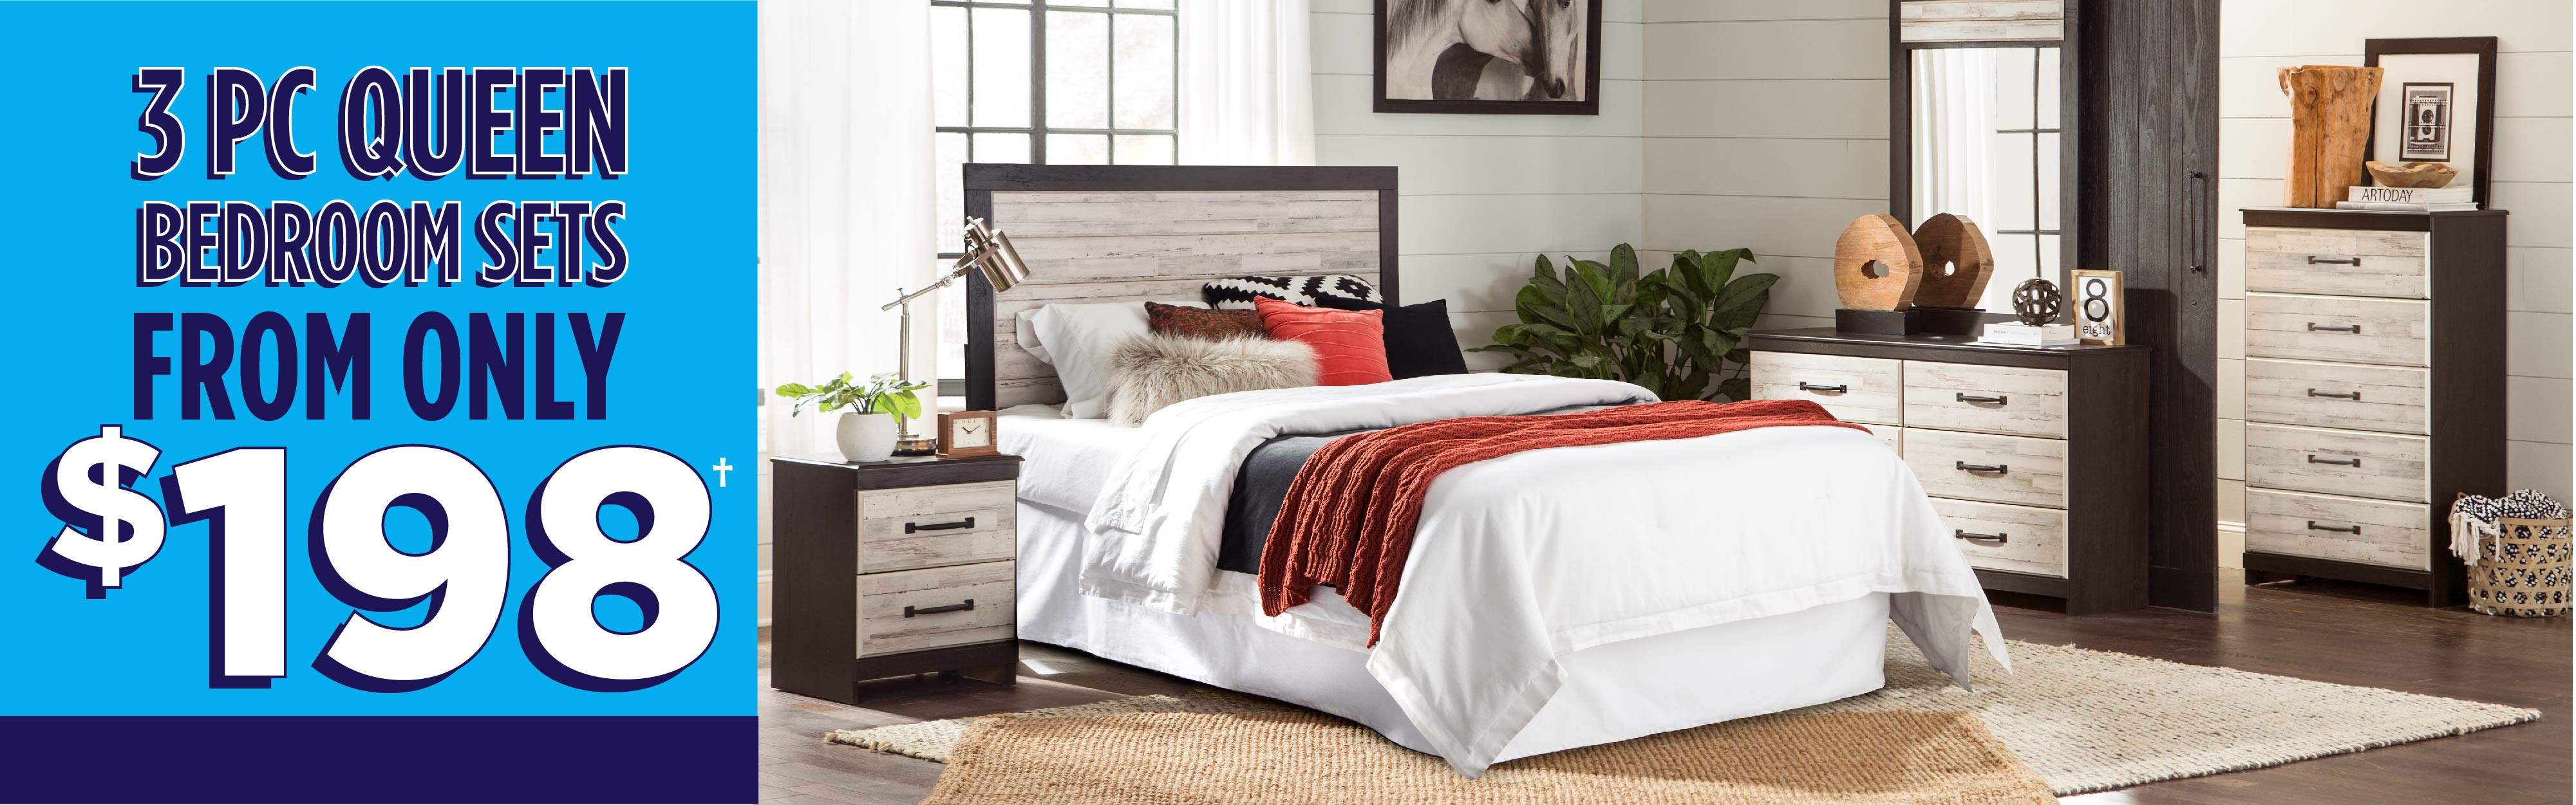 3-pc. Bedroom Sets from only $198!